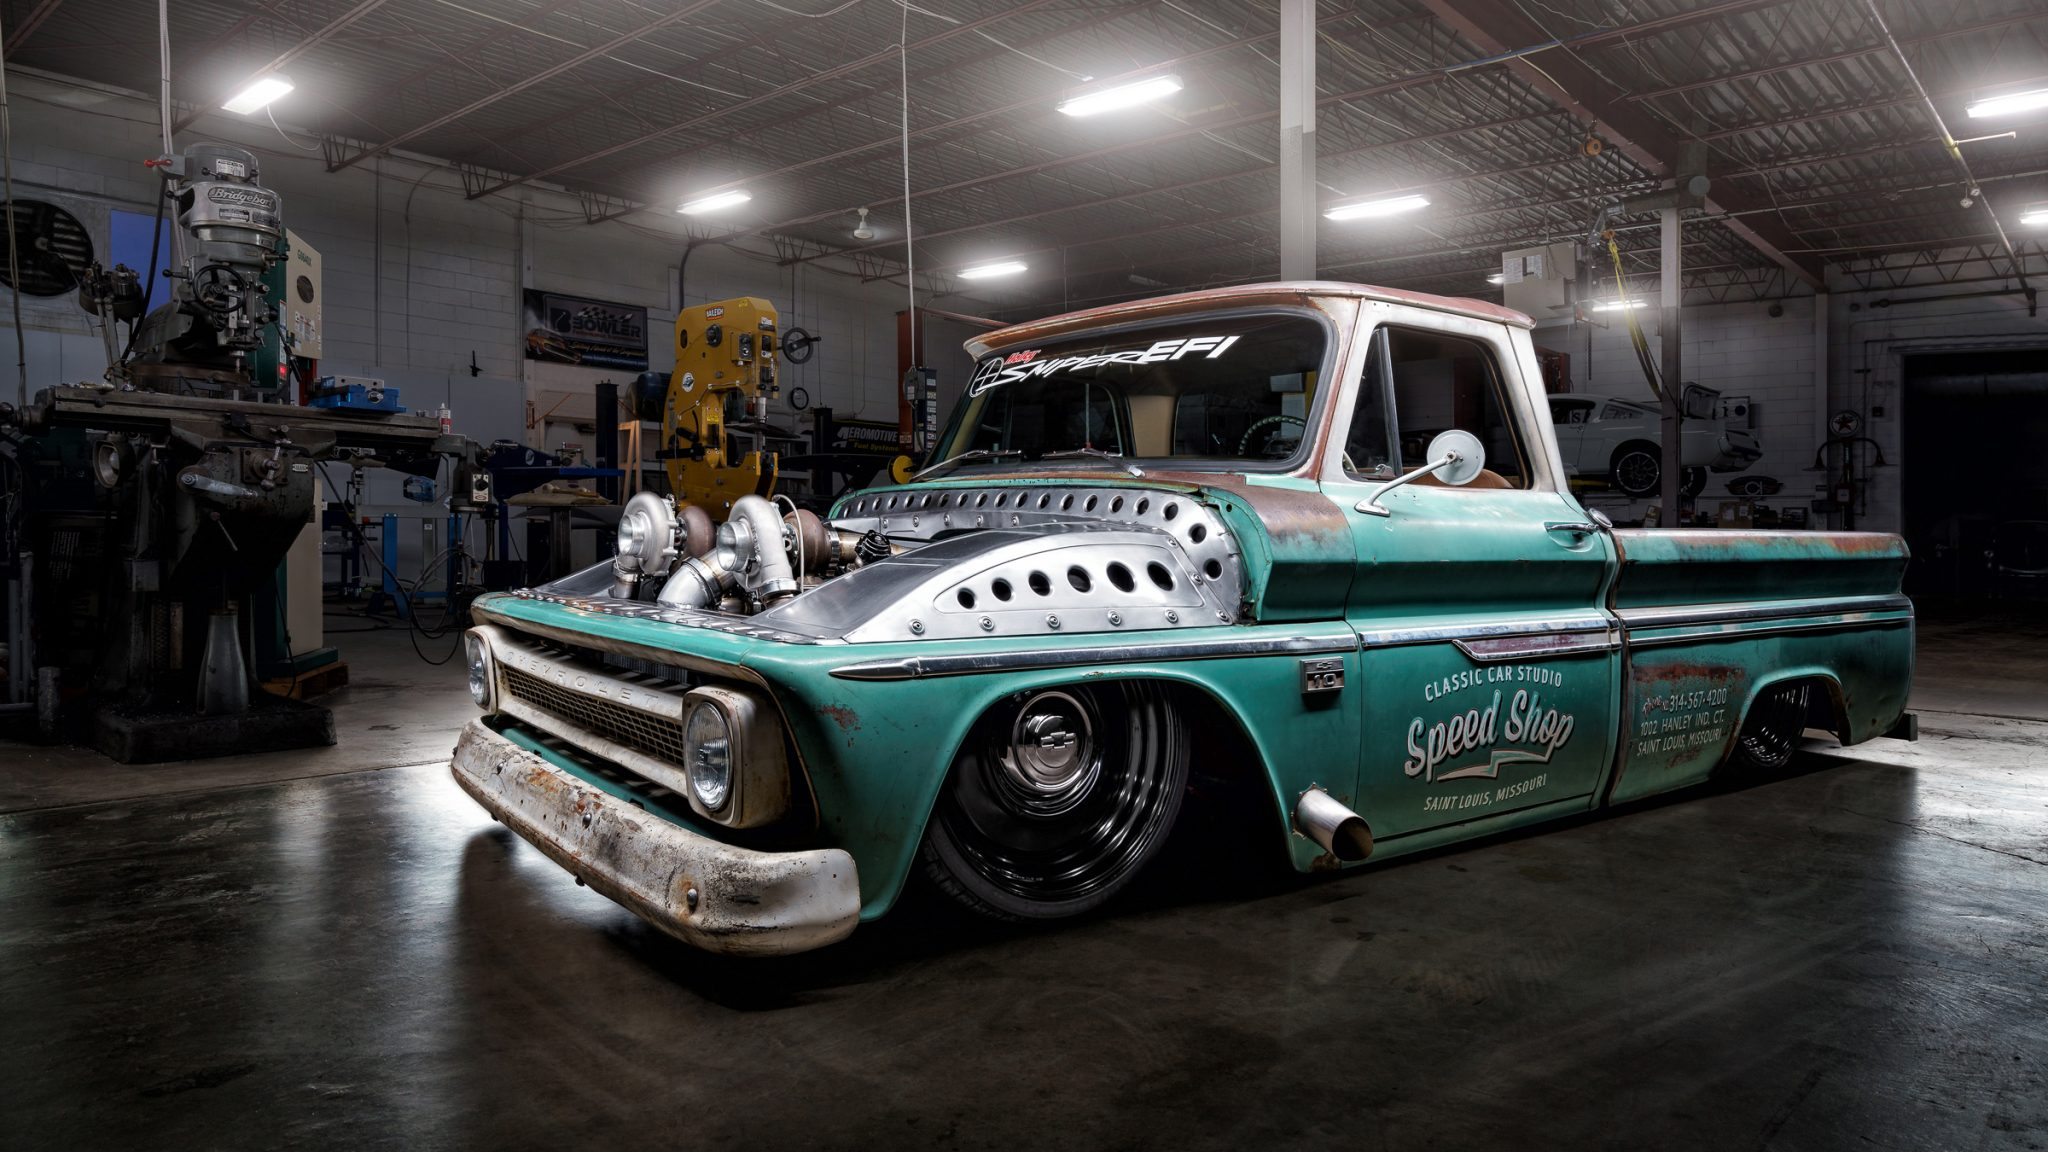 meet tiffany the baddest twin turbo c10 shop truck you 39 ll ever see moto networks. Black Bedroom Furniture Sets. Home Design Ideas